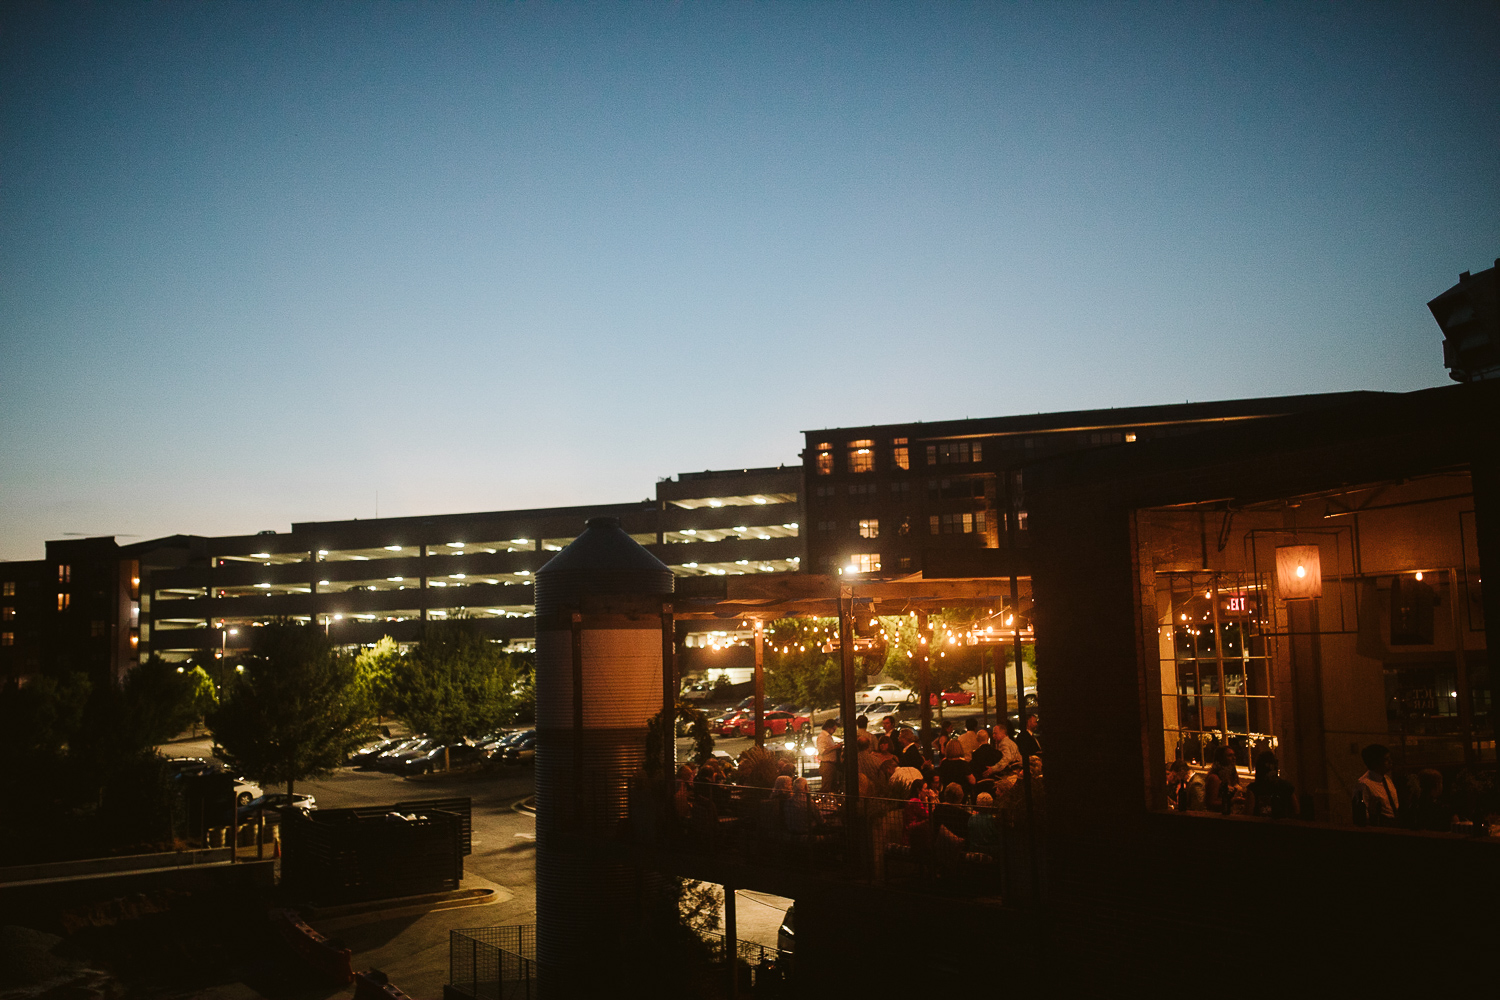 night time at JCT kitchen and bar